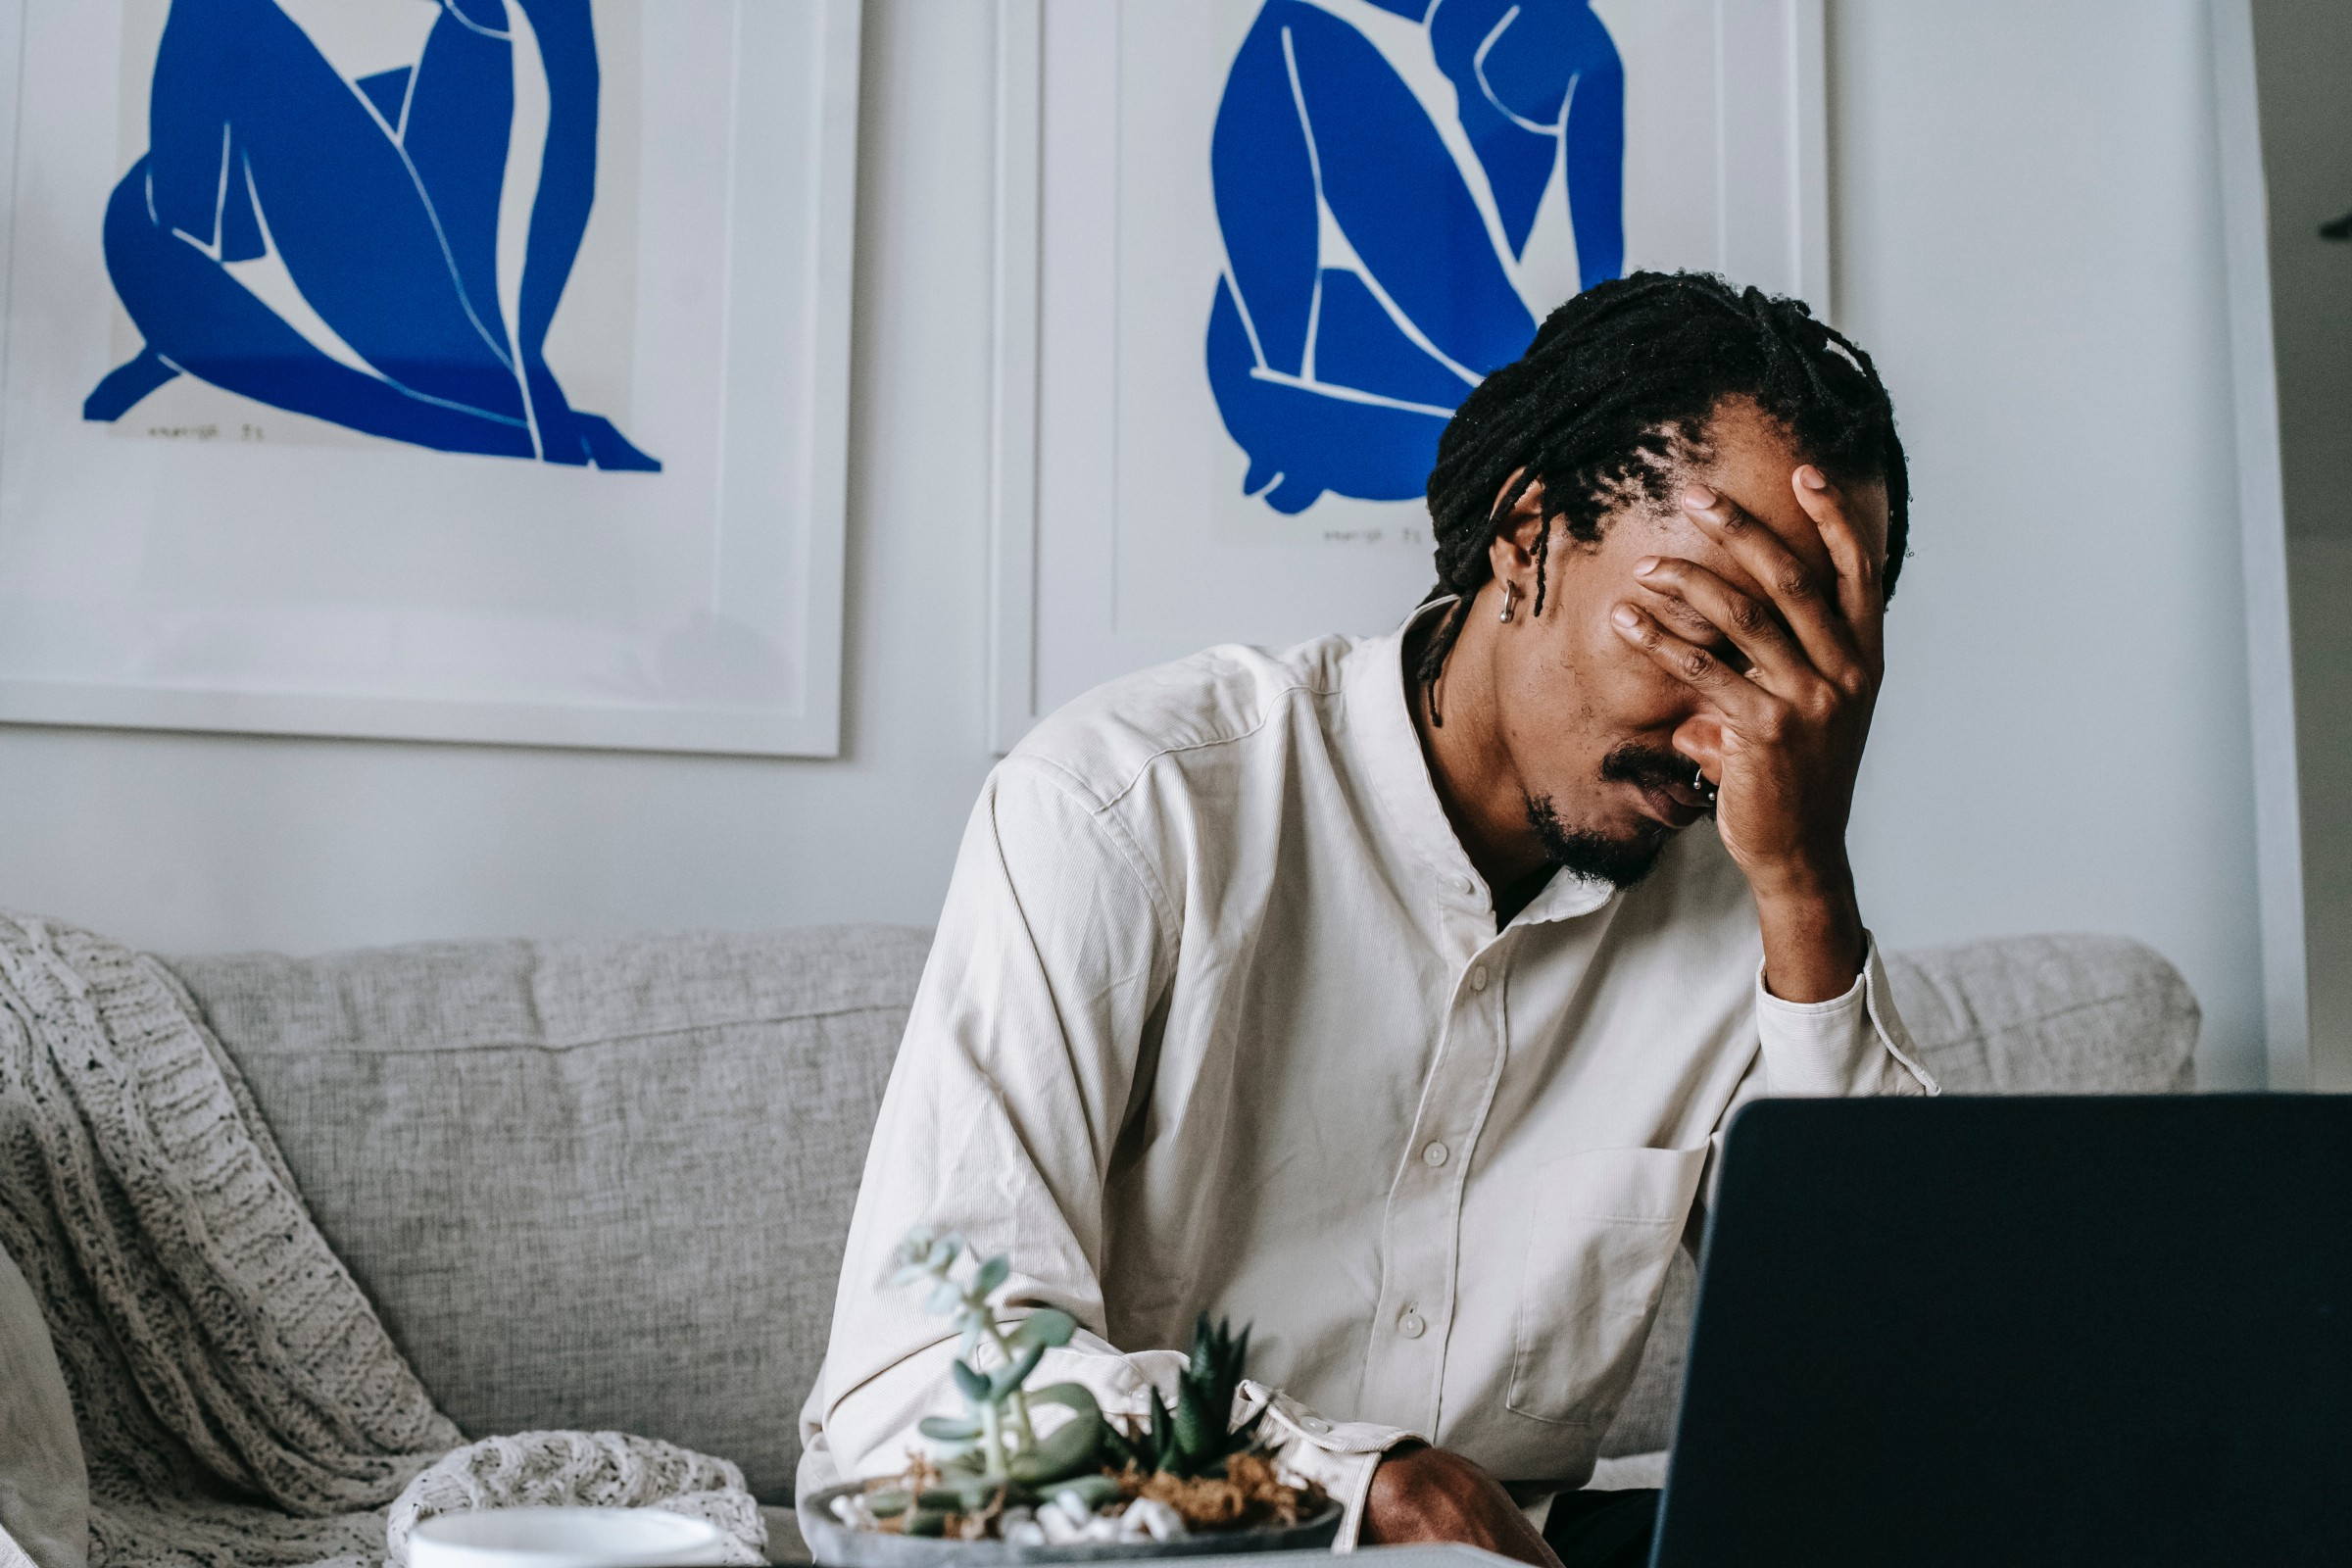 What Are Some Common Workplace Mental Health Issues?